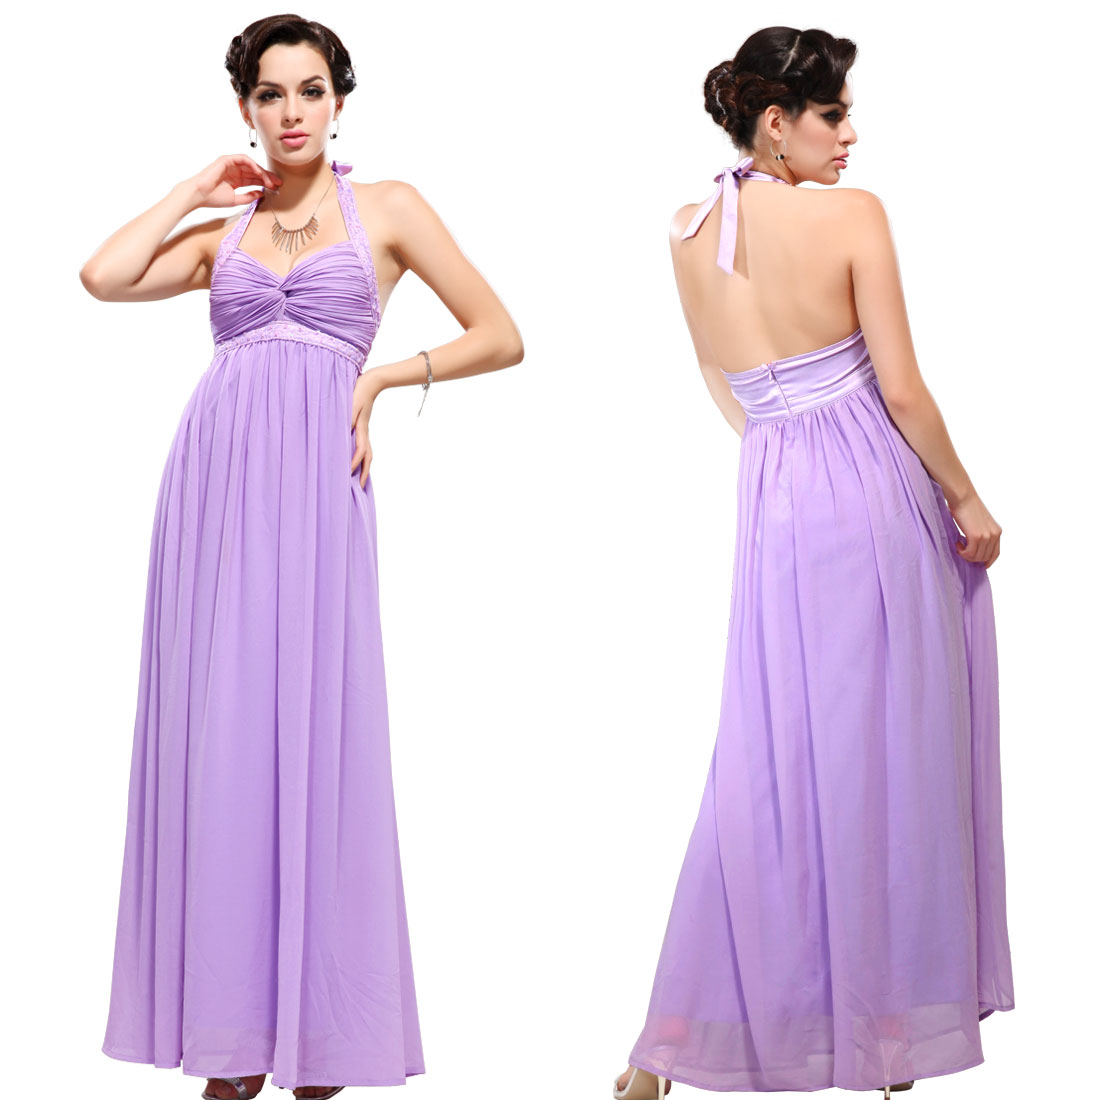 A flowy, Grecian bridesmaids dress.